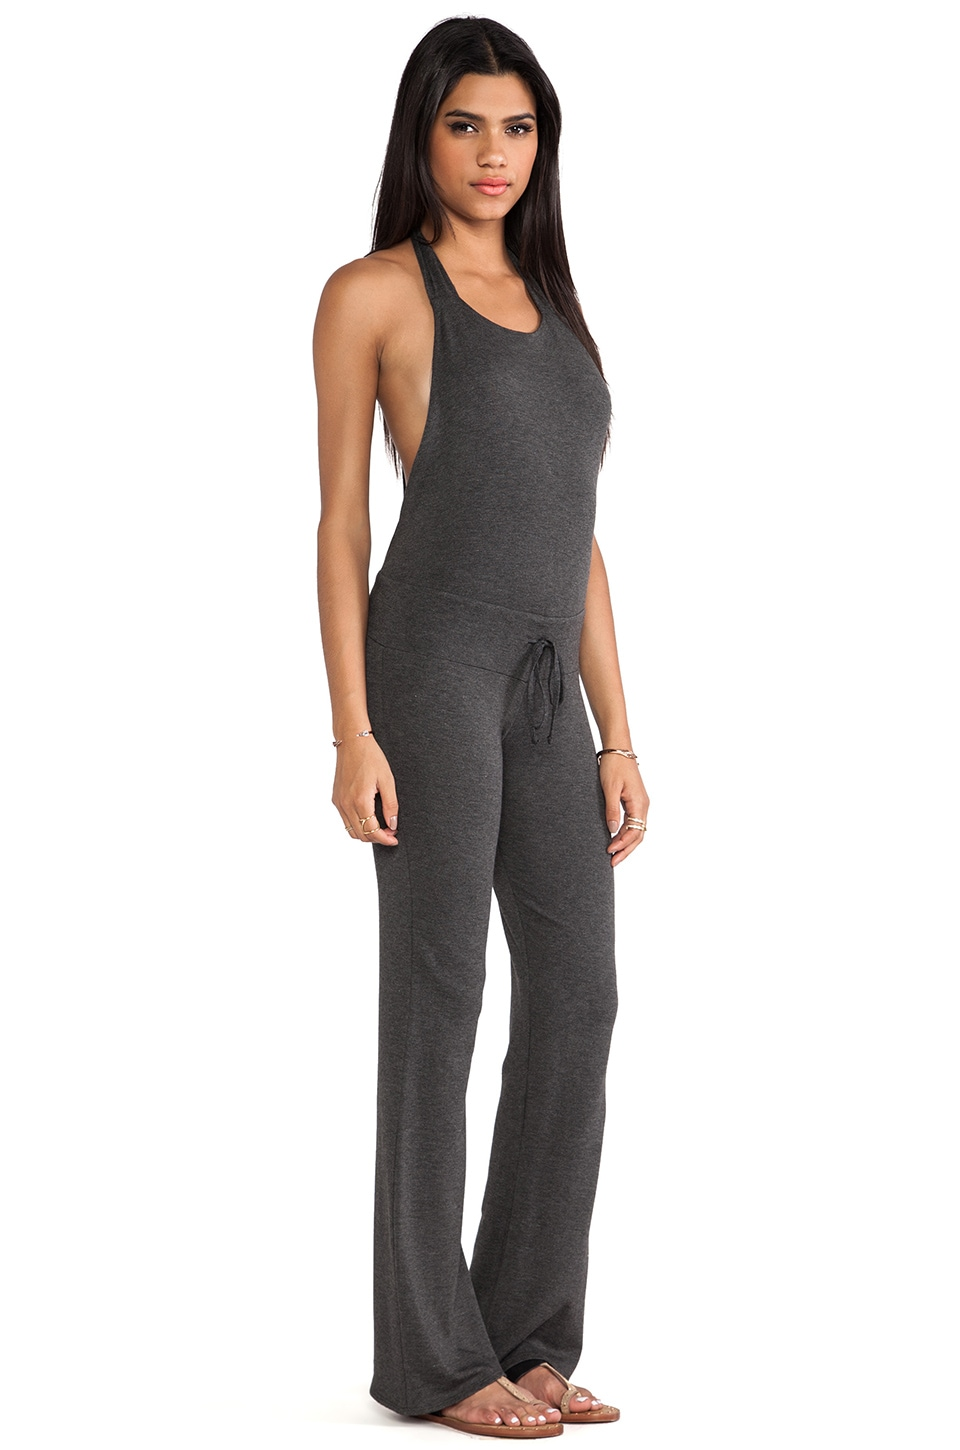 Riller & Fount Nadja Halter Boot Cut Jumpsuit in Stud